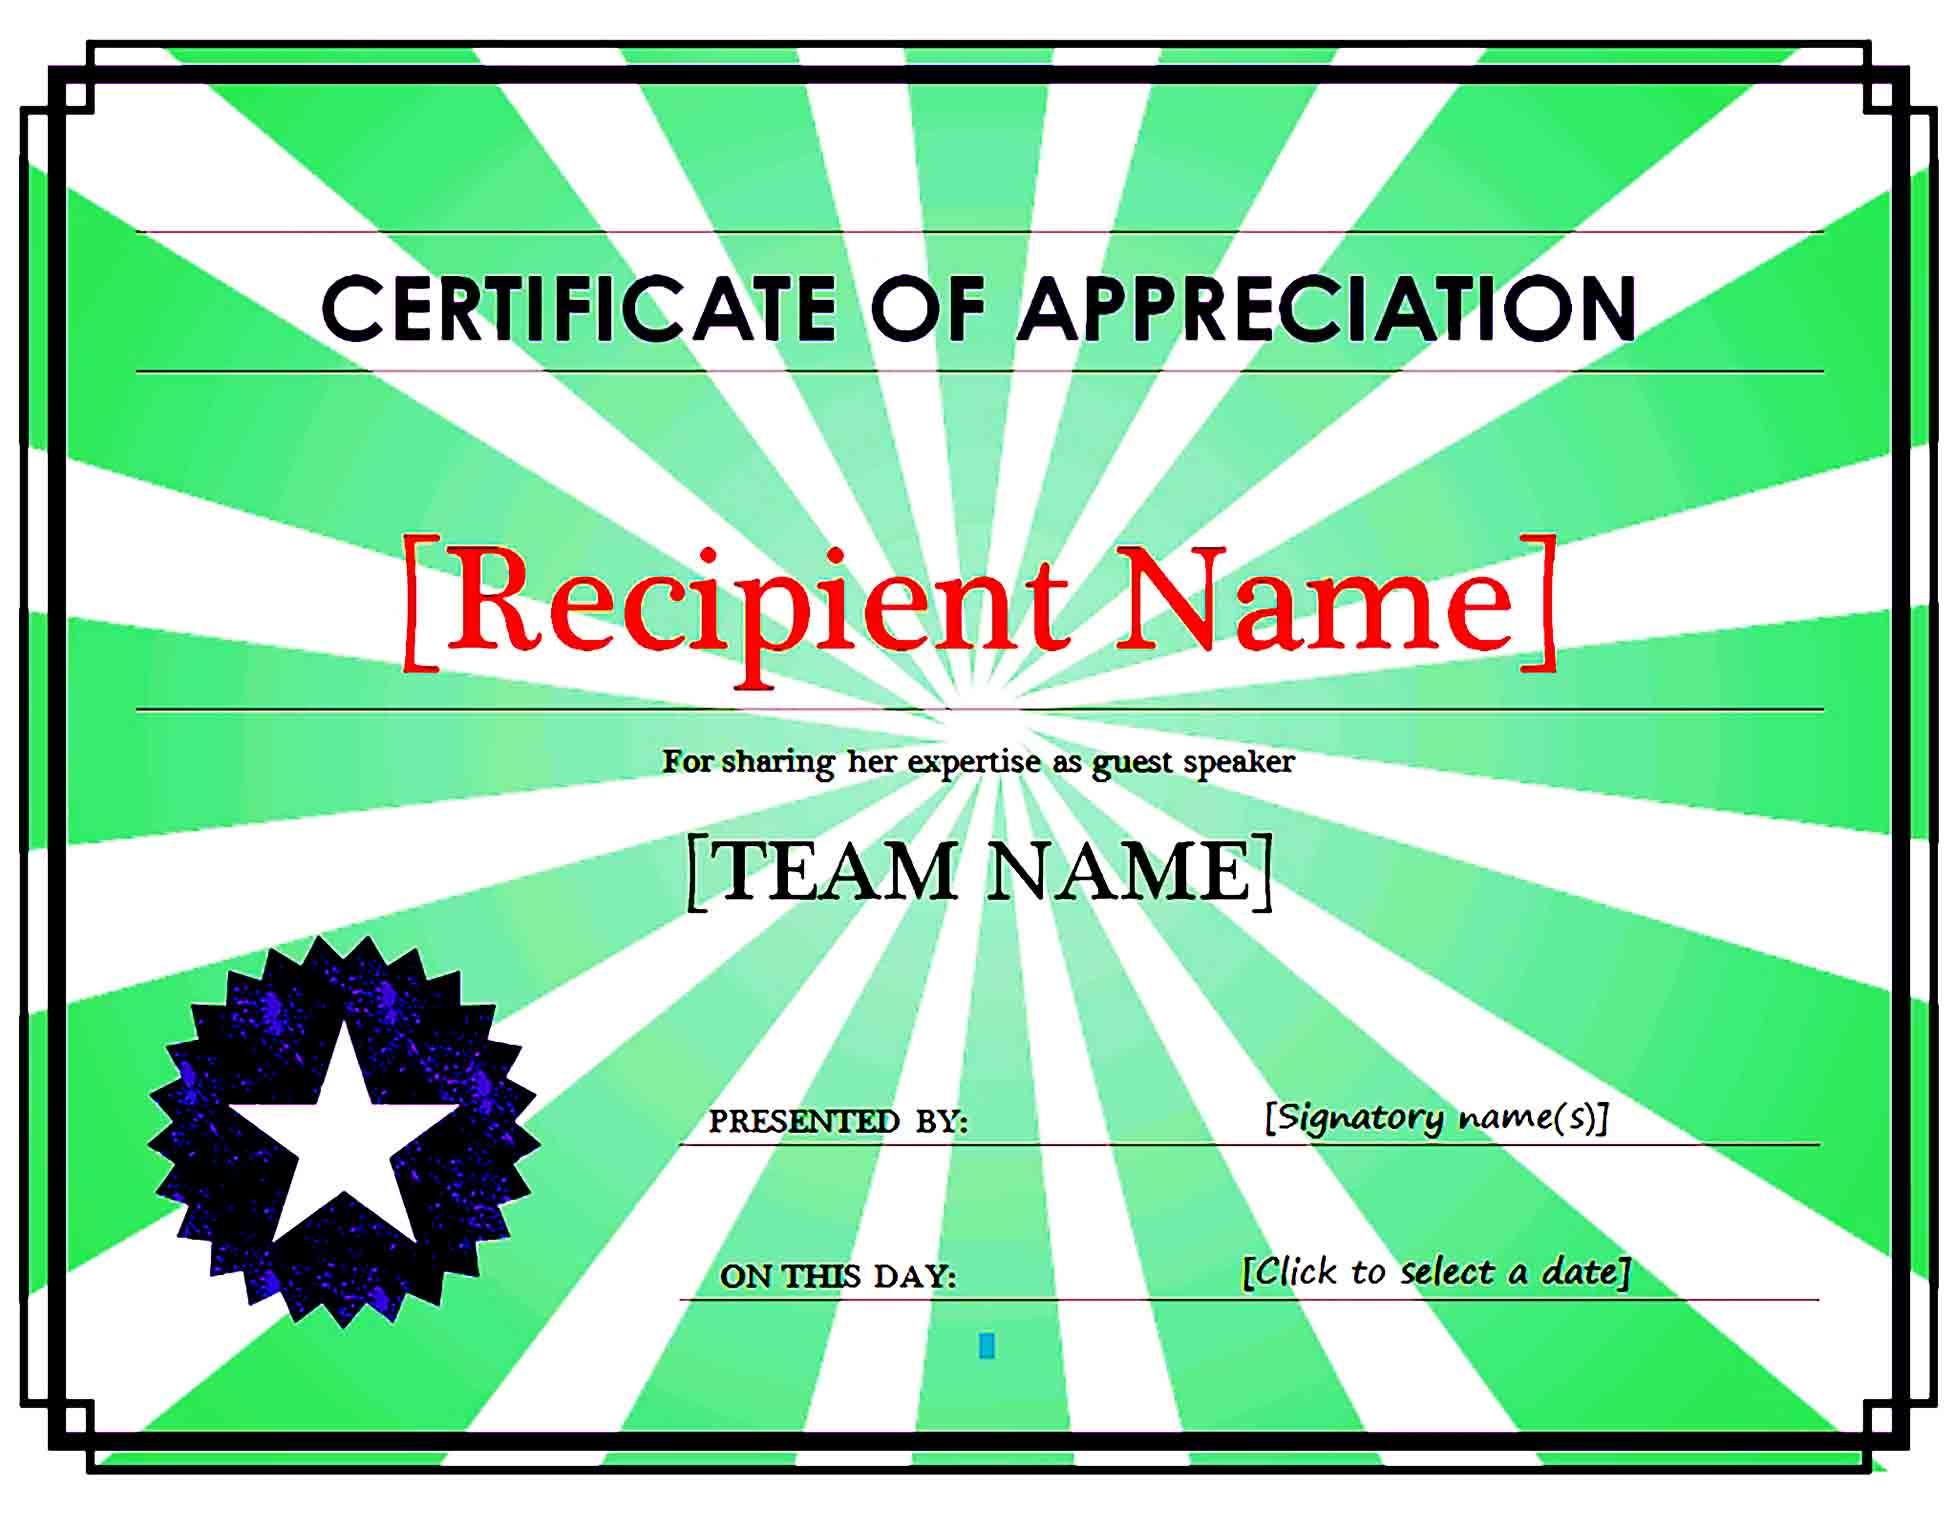 Certificate of Appreciation 14